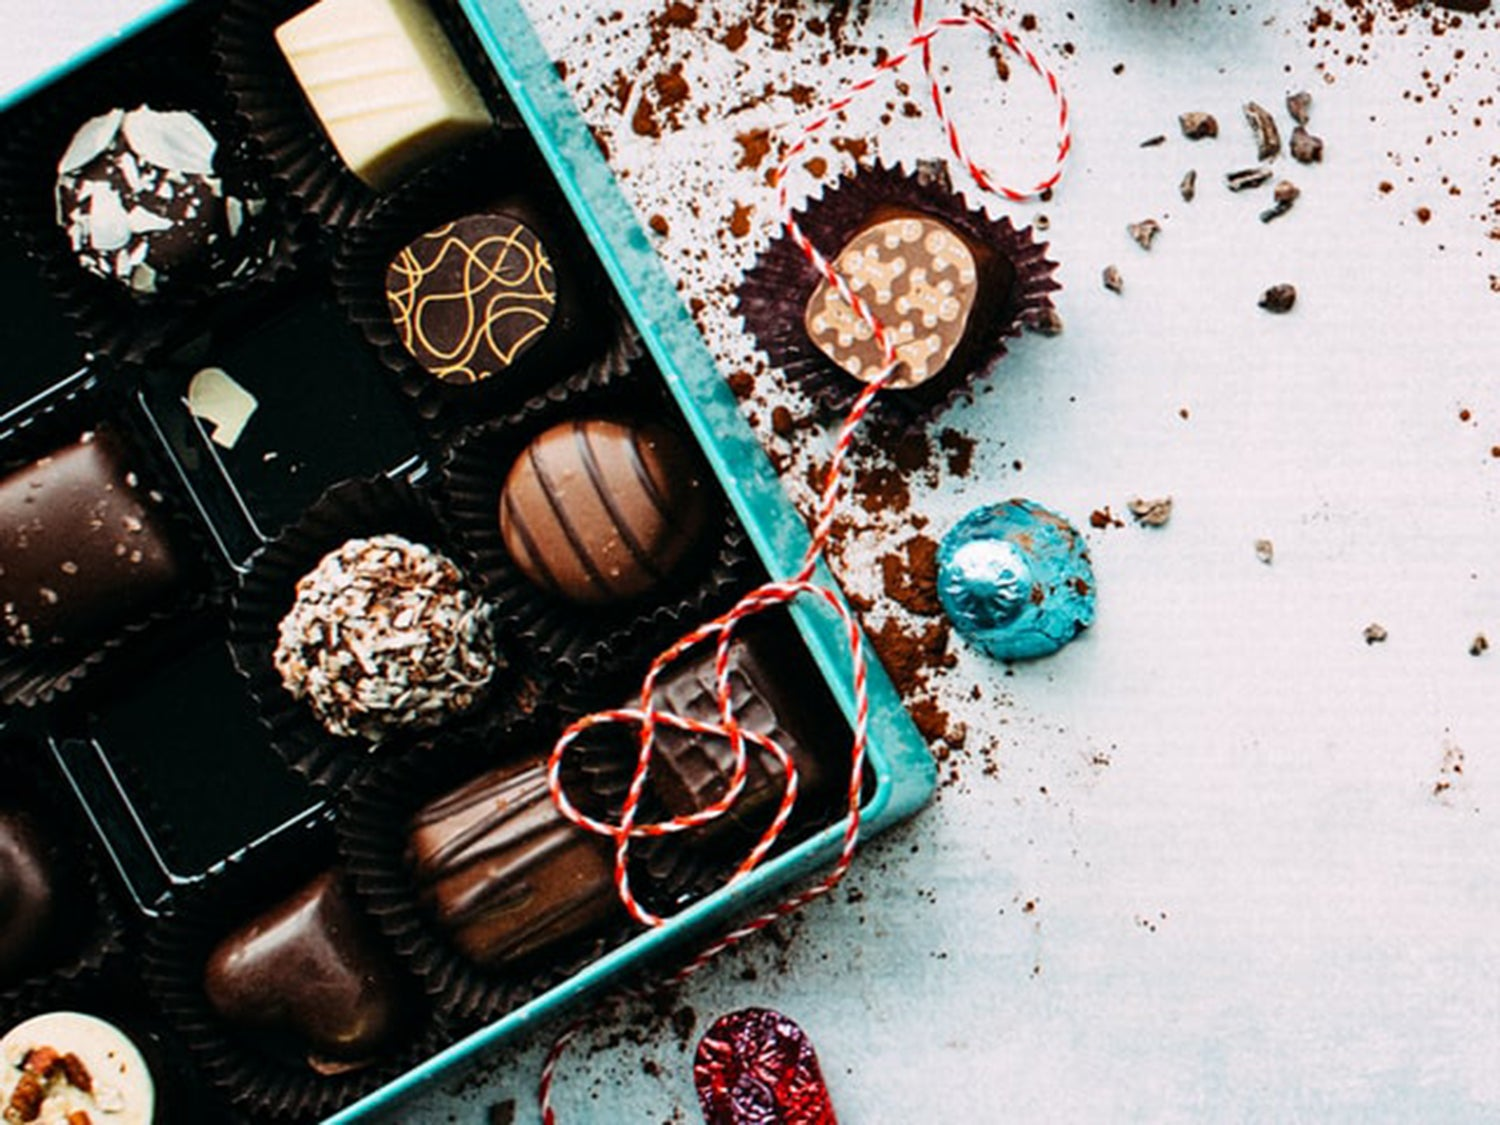 A selection of chocolate candy in a box